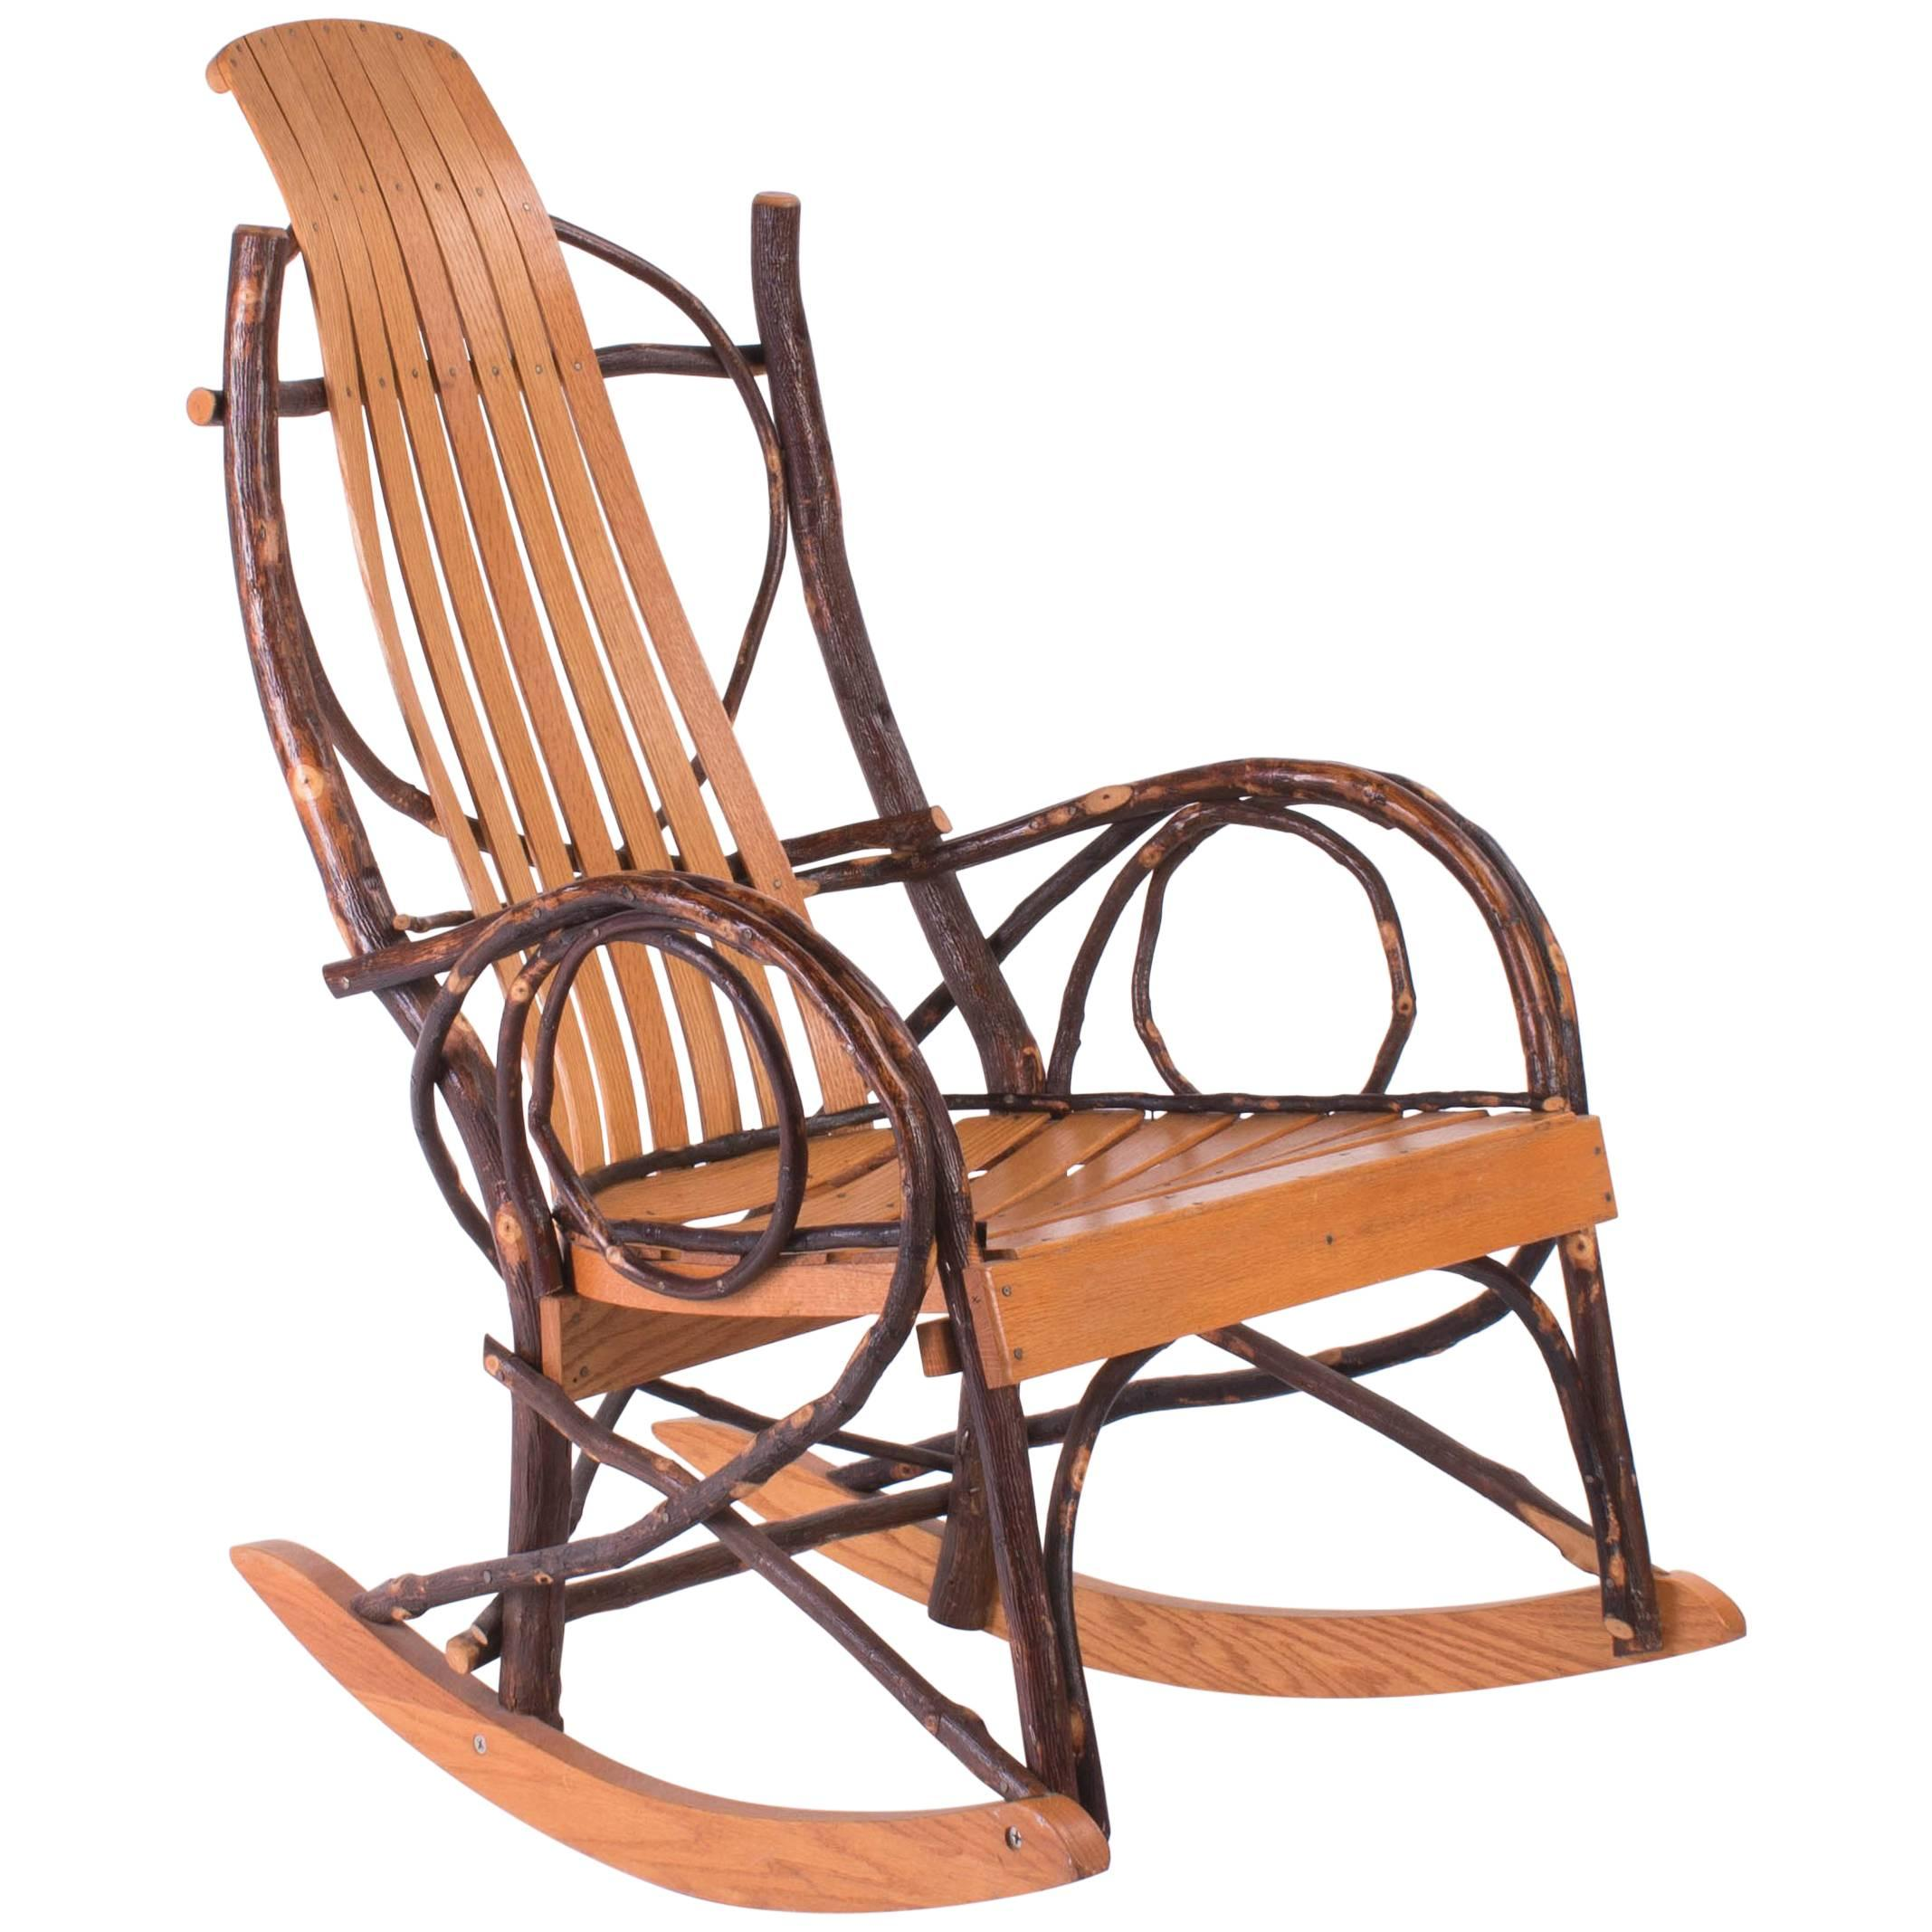 Slated Wood And Tree Branch Artist Studio Rocking Chair At